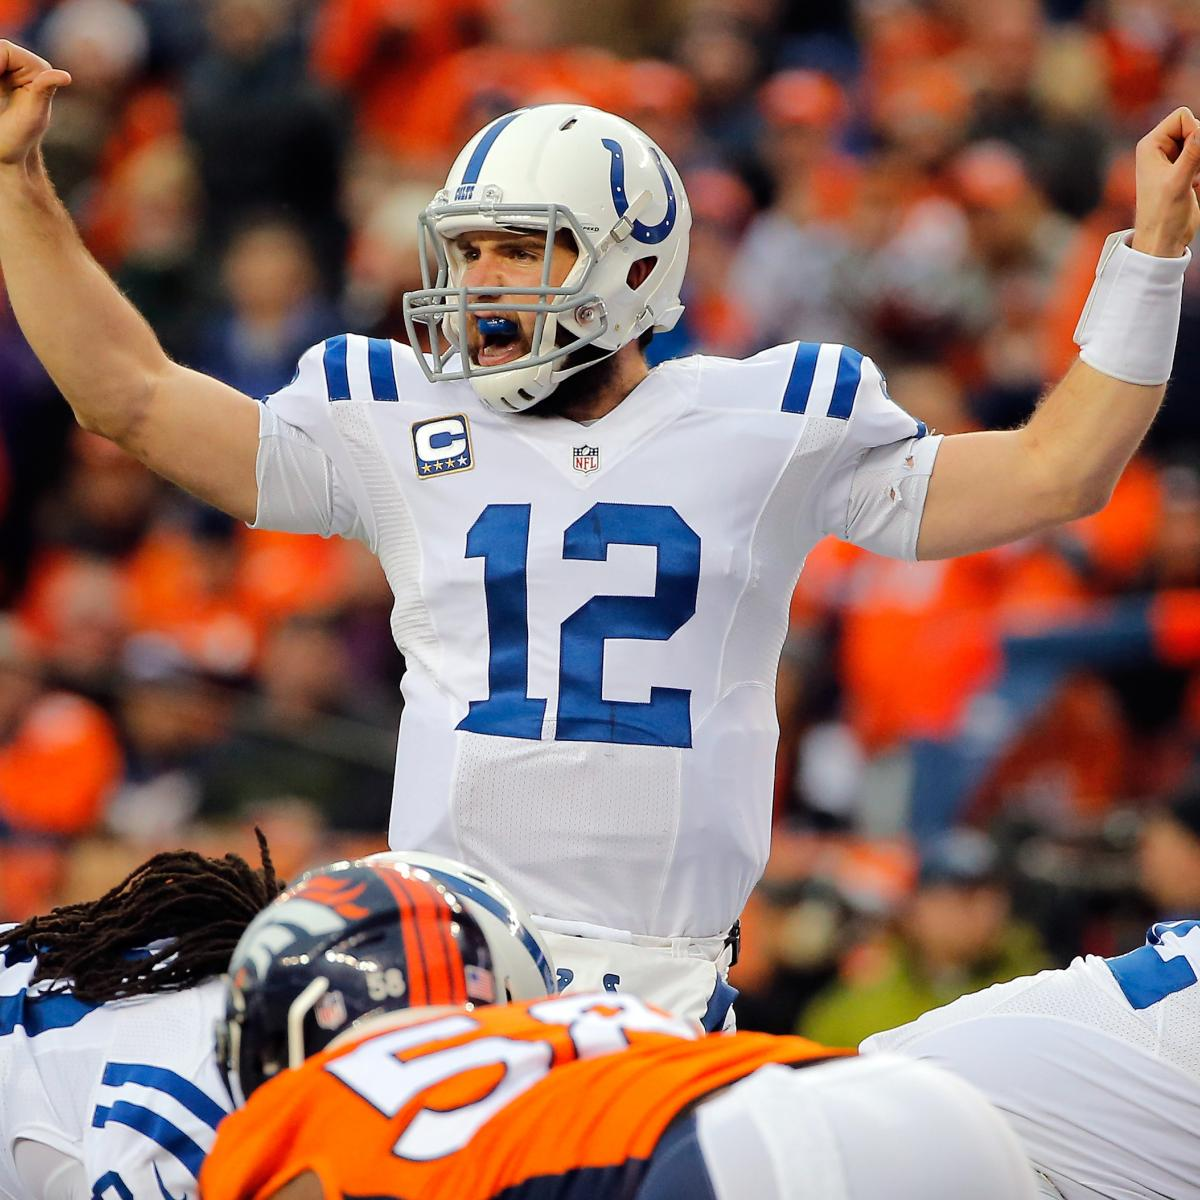 NFL Playoff Schedule 2015: TV Guide, Live Stream Coverage ...